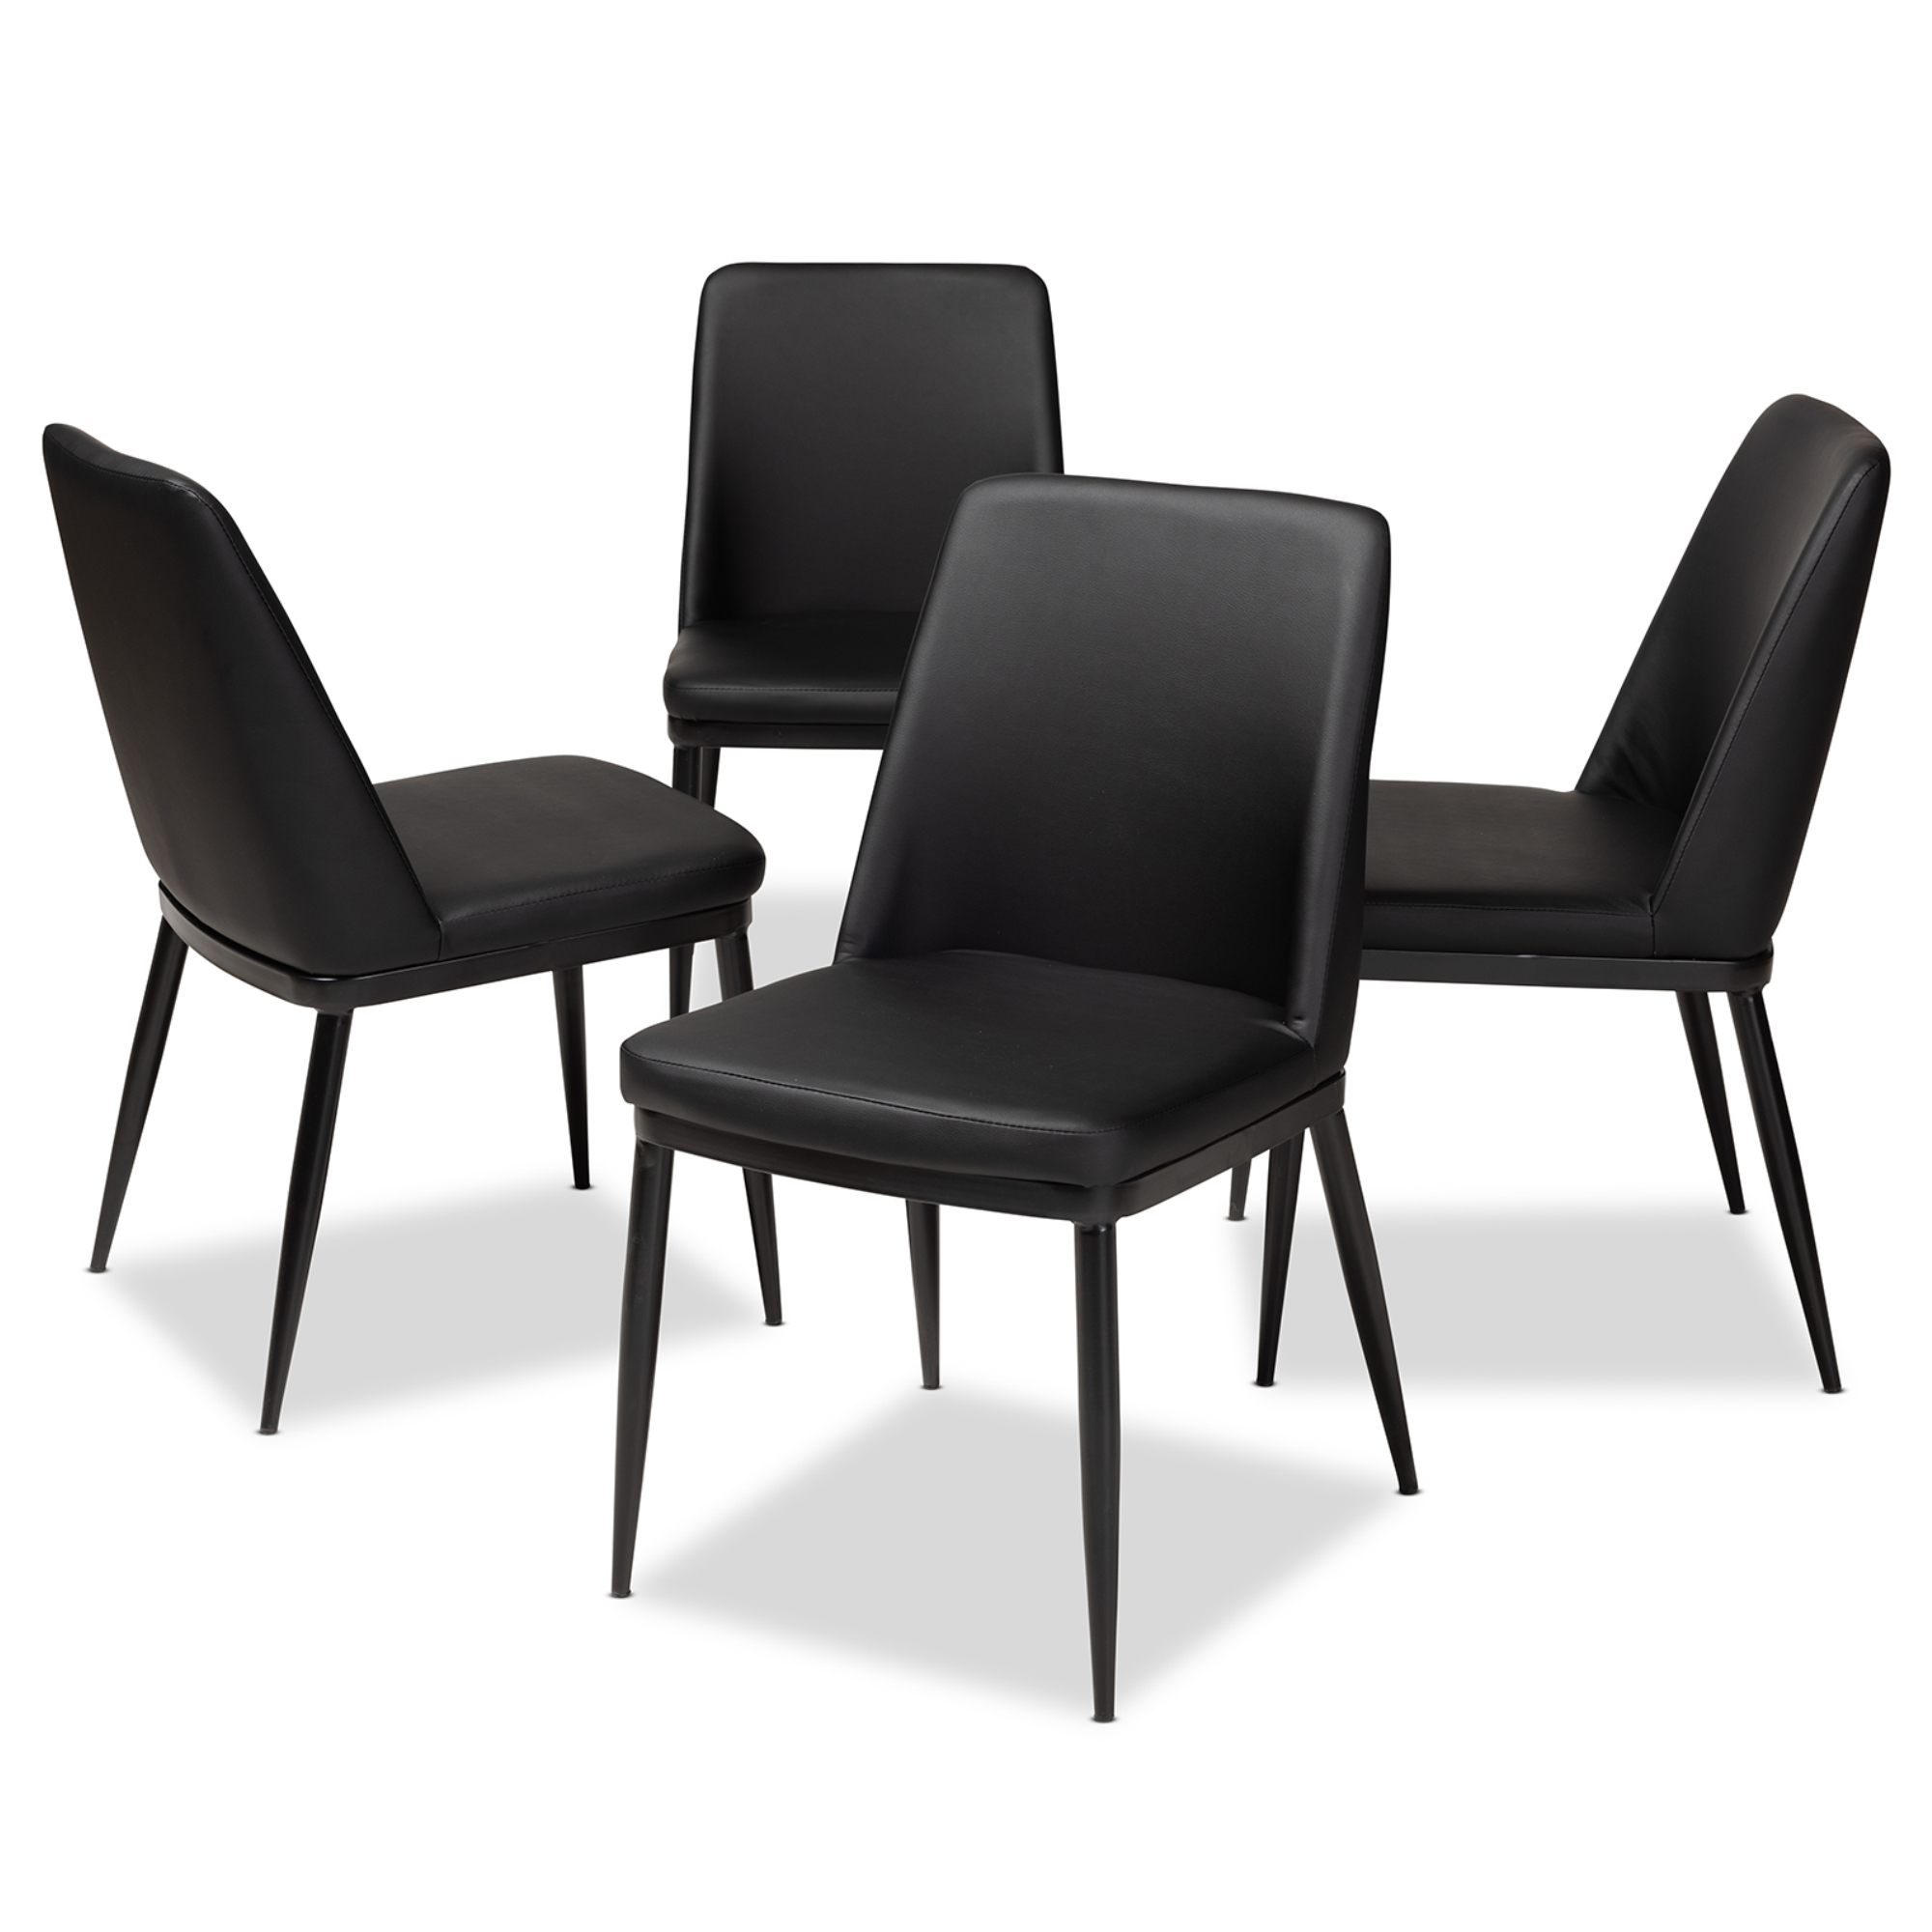 Baxton Chair Baxton Studio Darcell Modern And Contemporary Black Faux